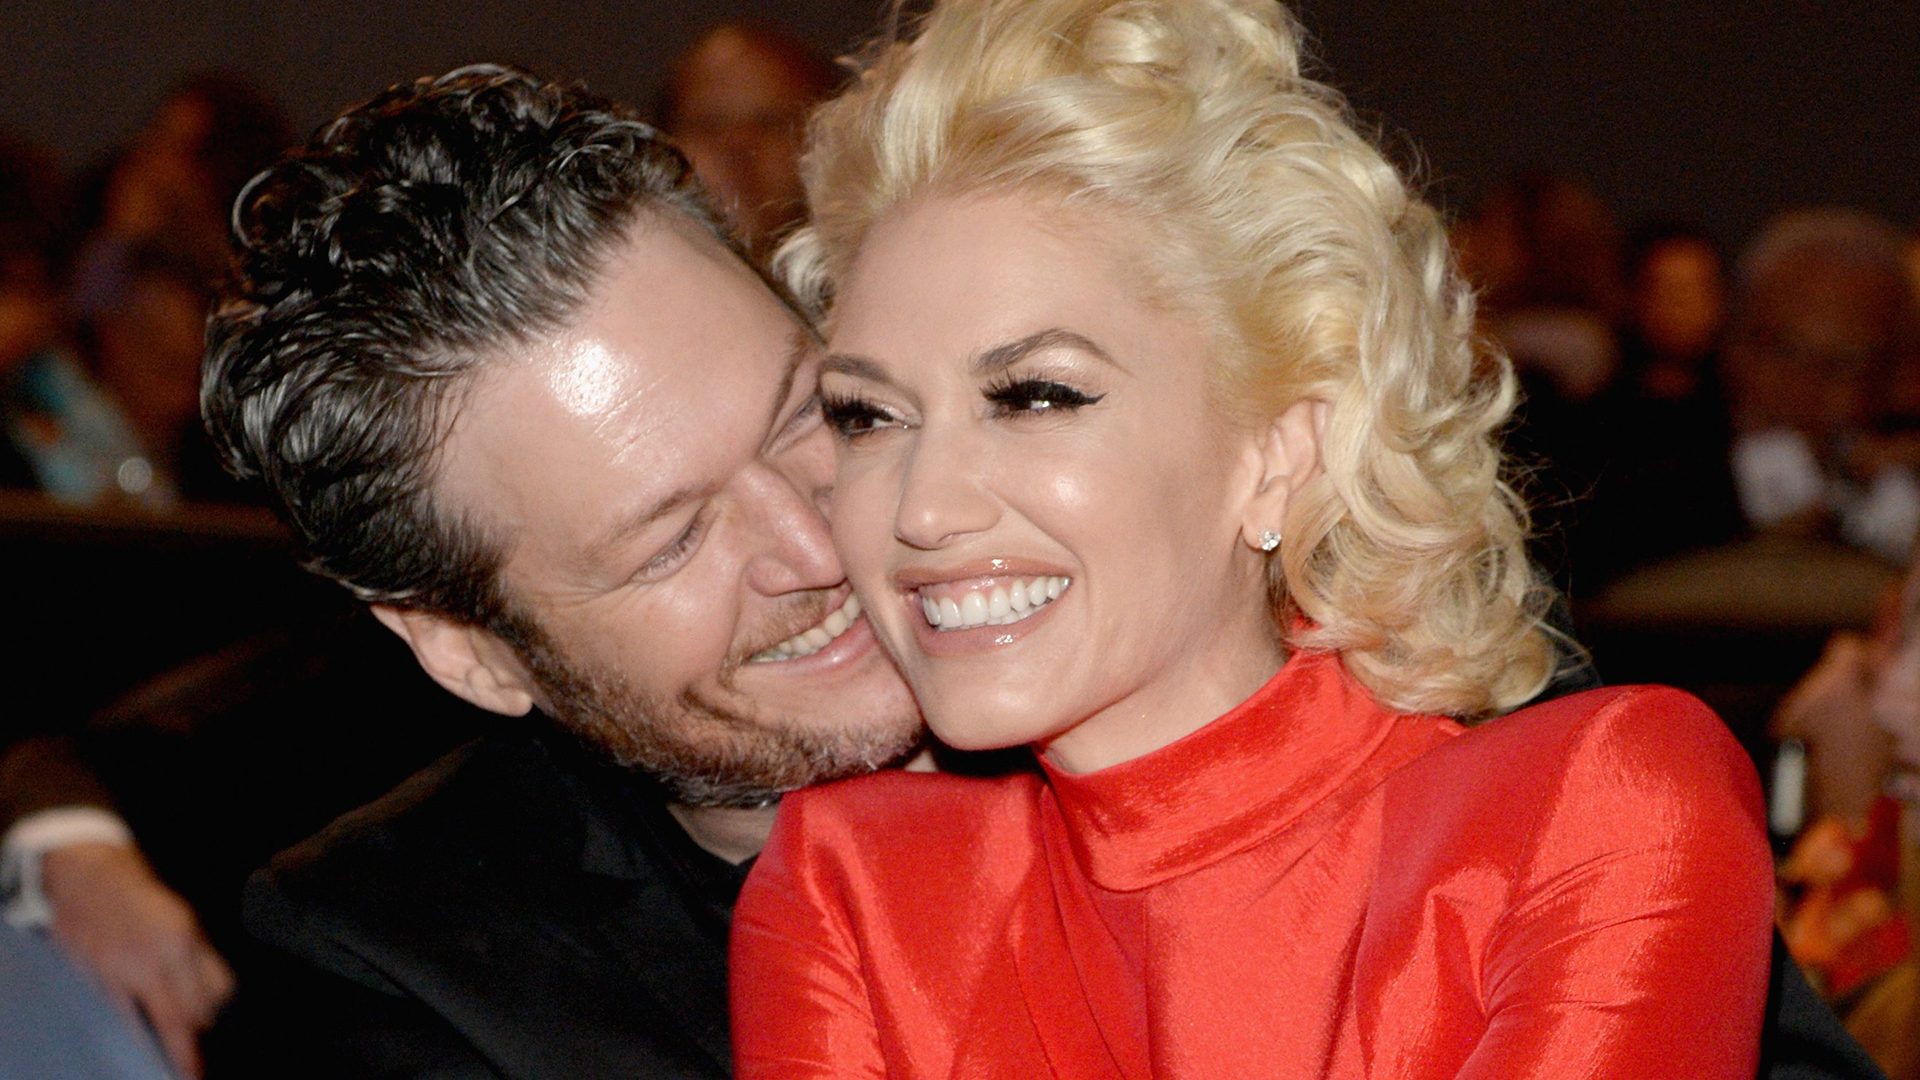 Gwen Stefani Shows Her Love for Blake Shelton